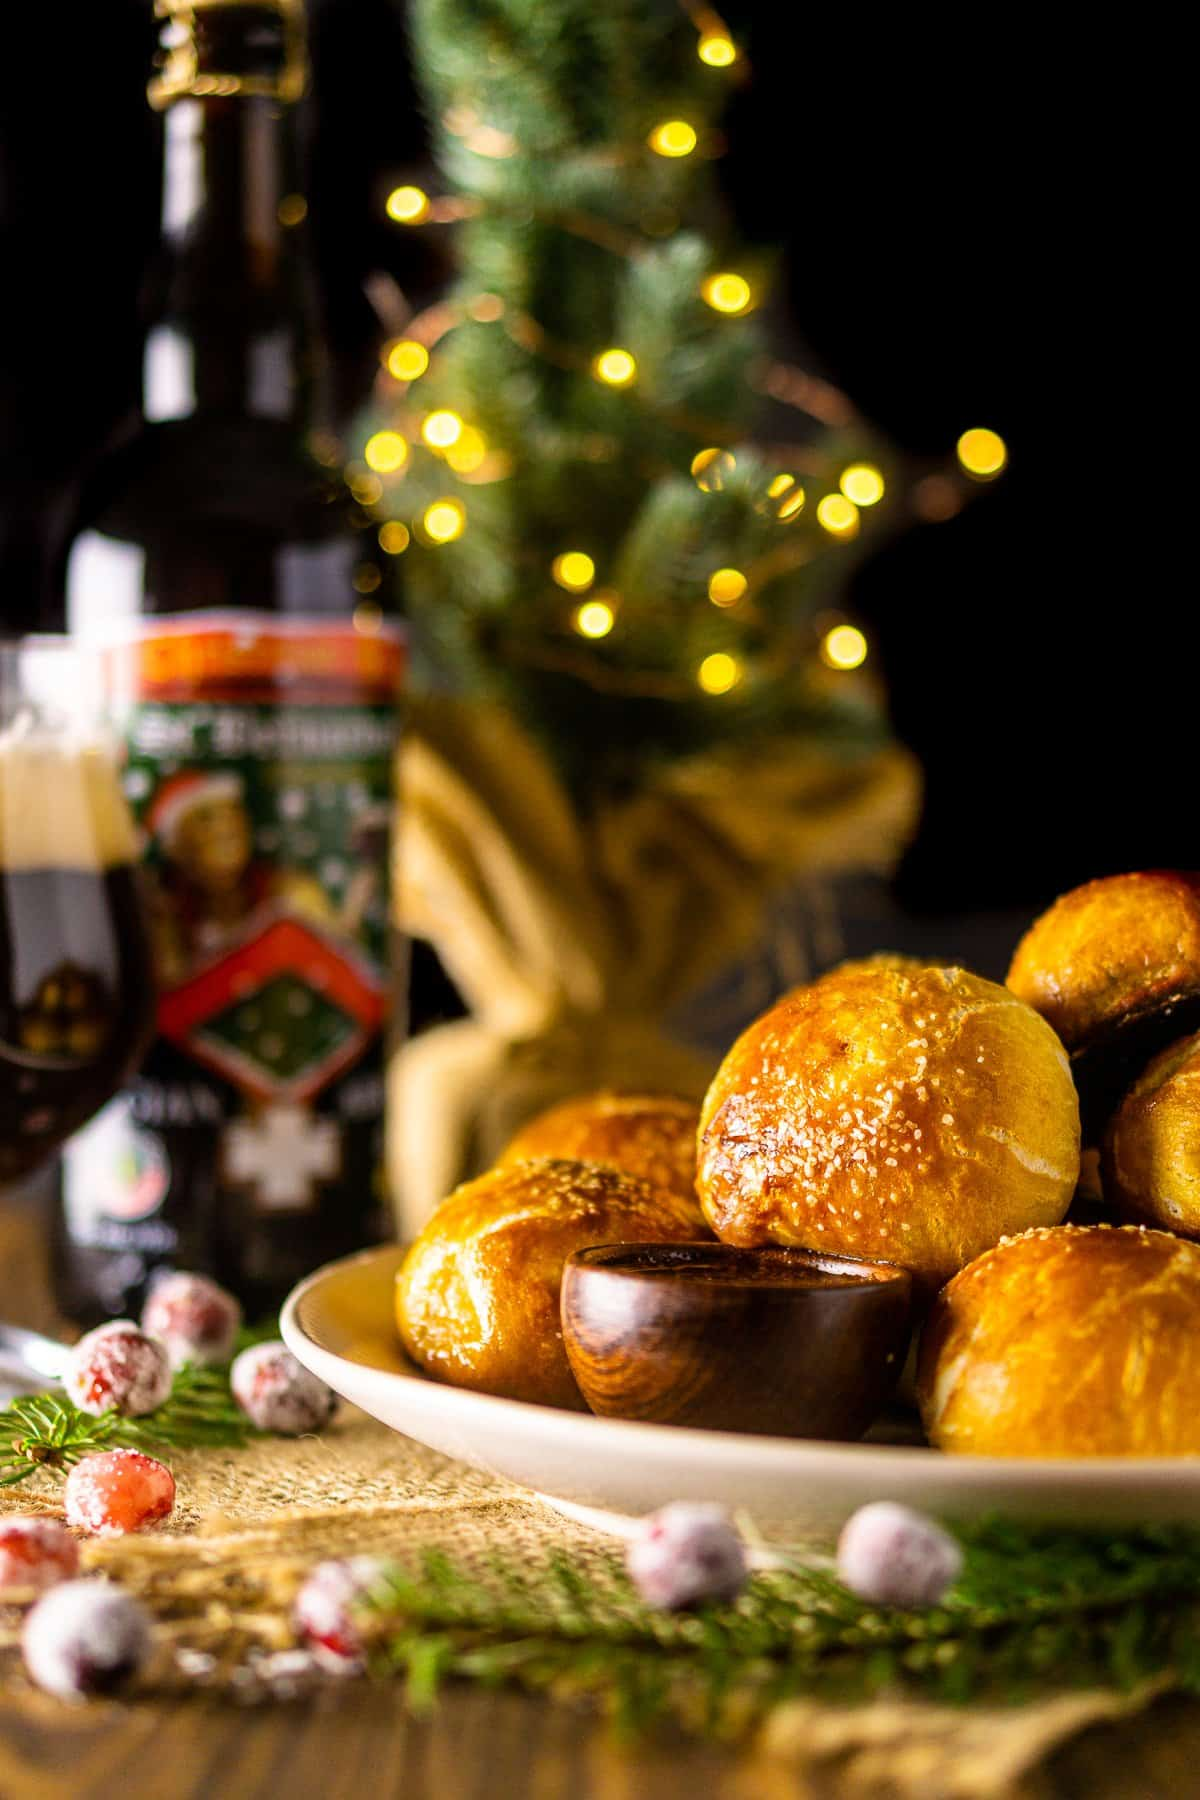 Looking straight on to a plate of holiday pretzel bites with a small Christmas tree and beer in the background.